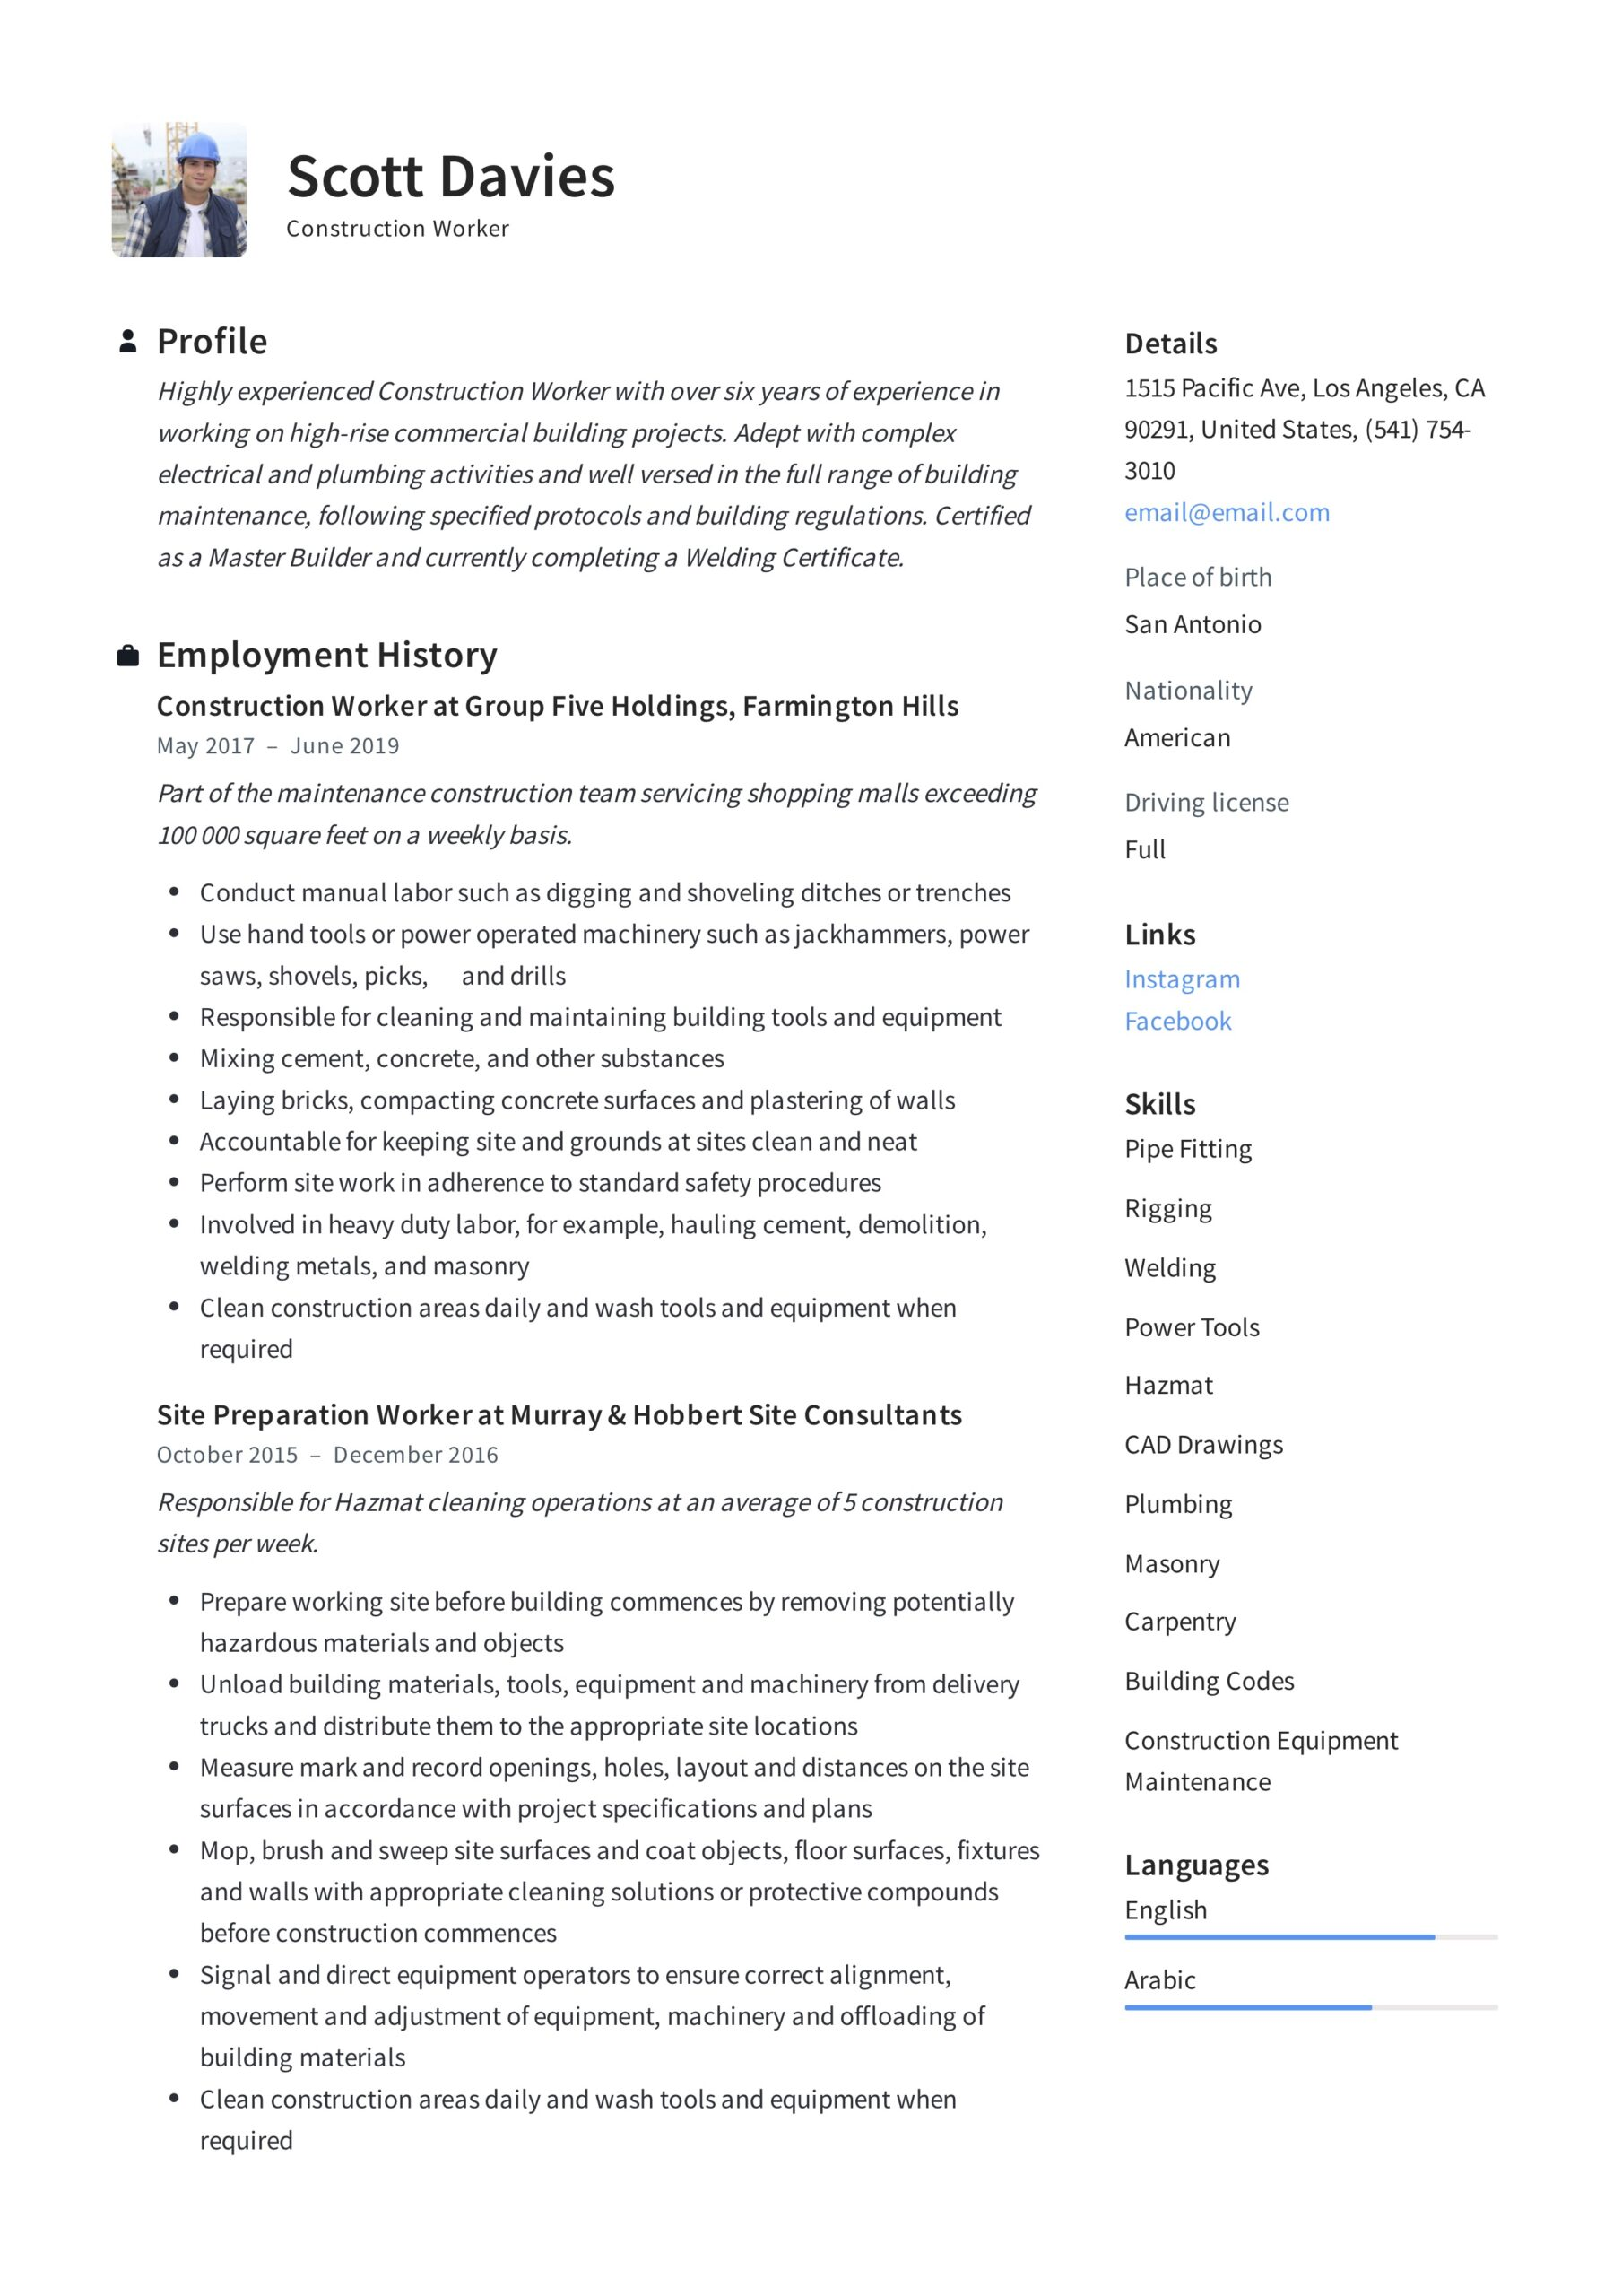 construction worker resume writing guide templates certificates and licenses on sample Resume Certificates And Licenses On Resume